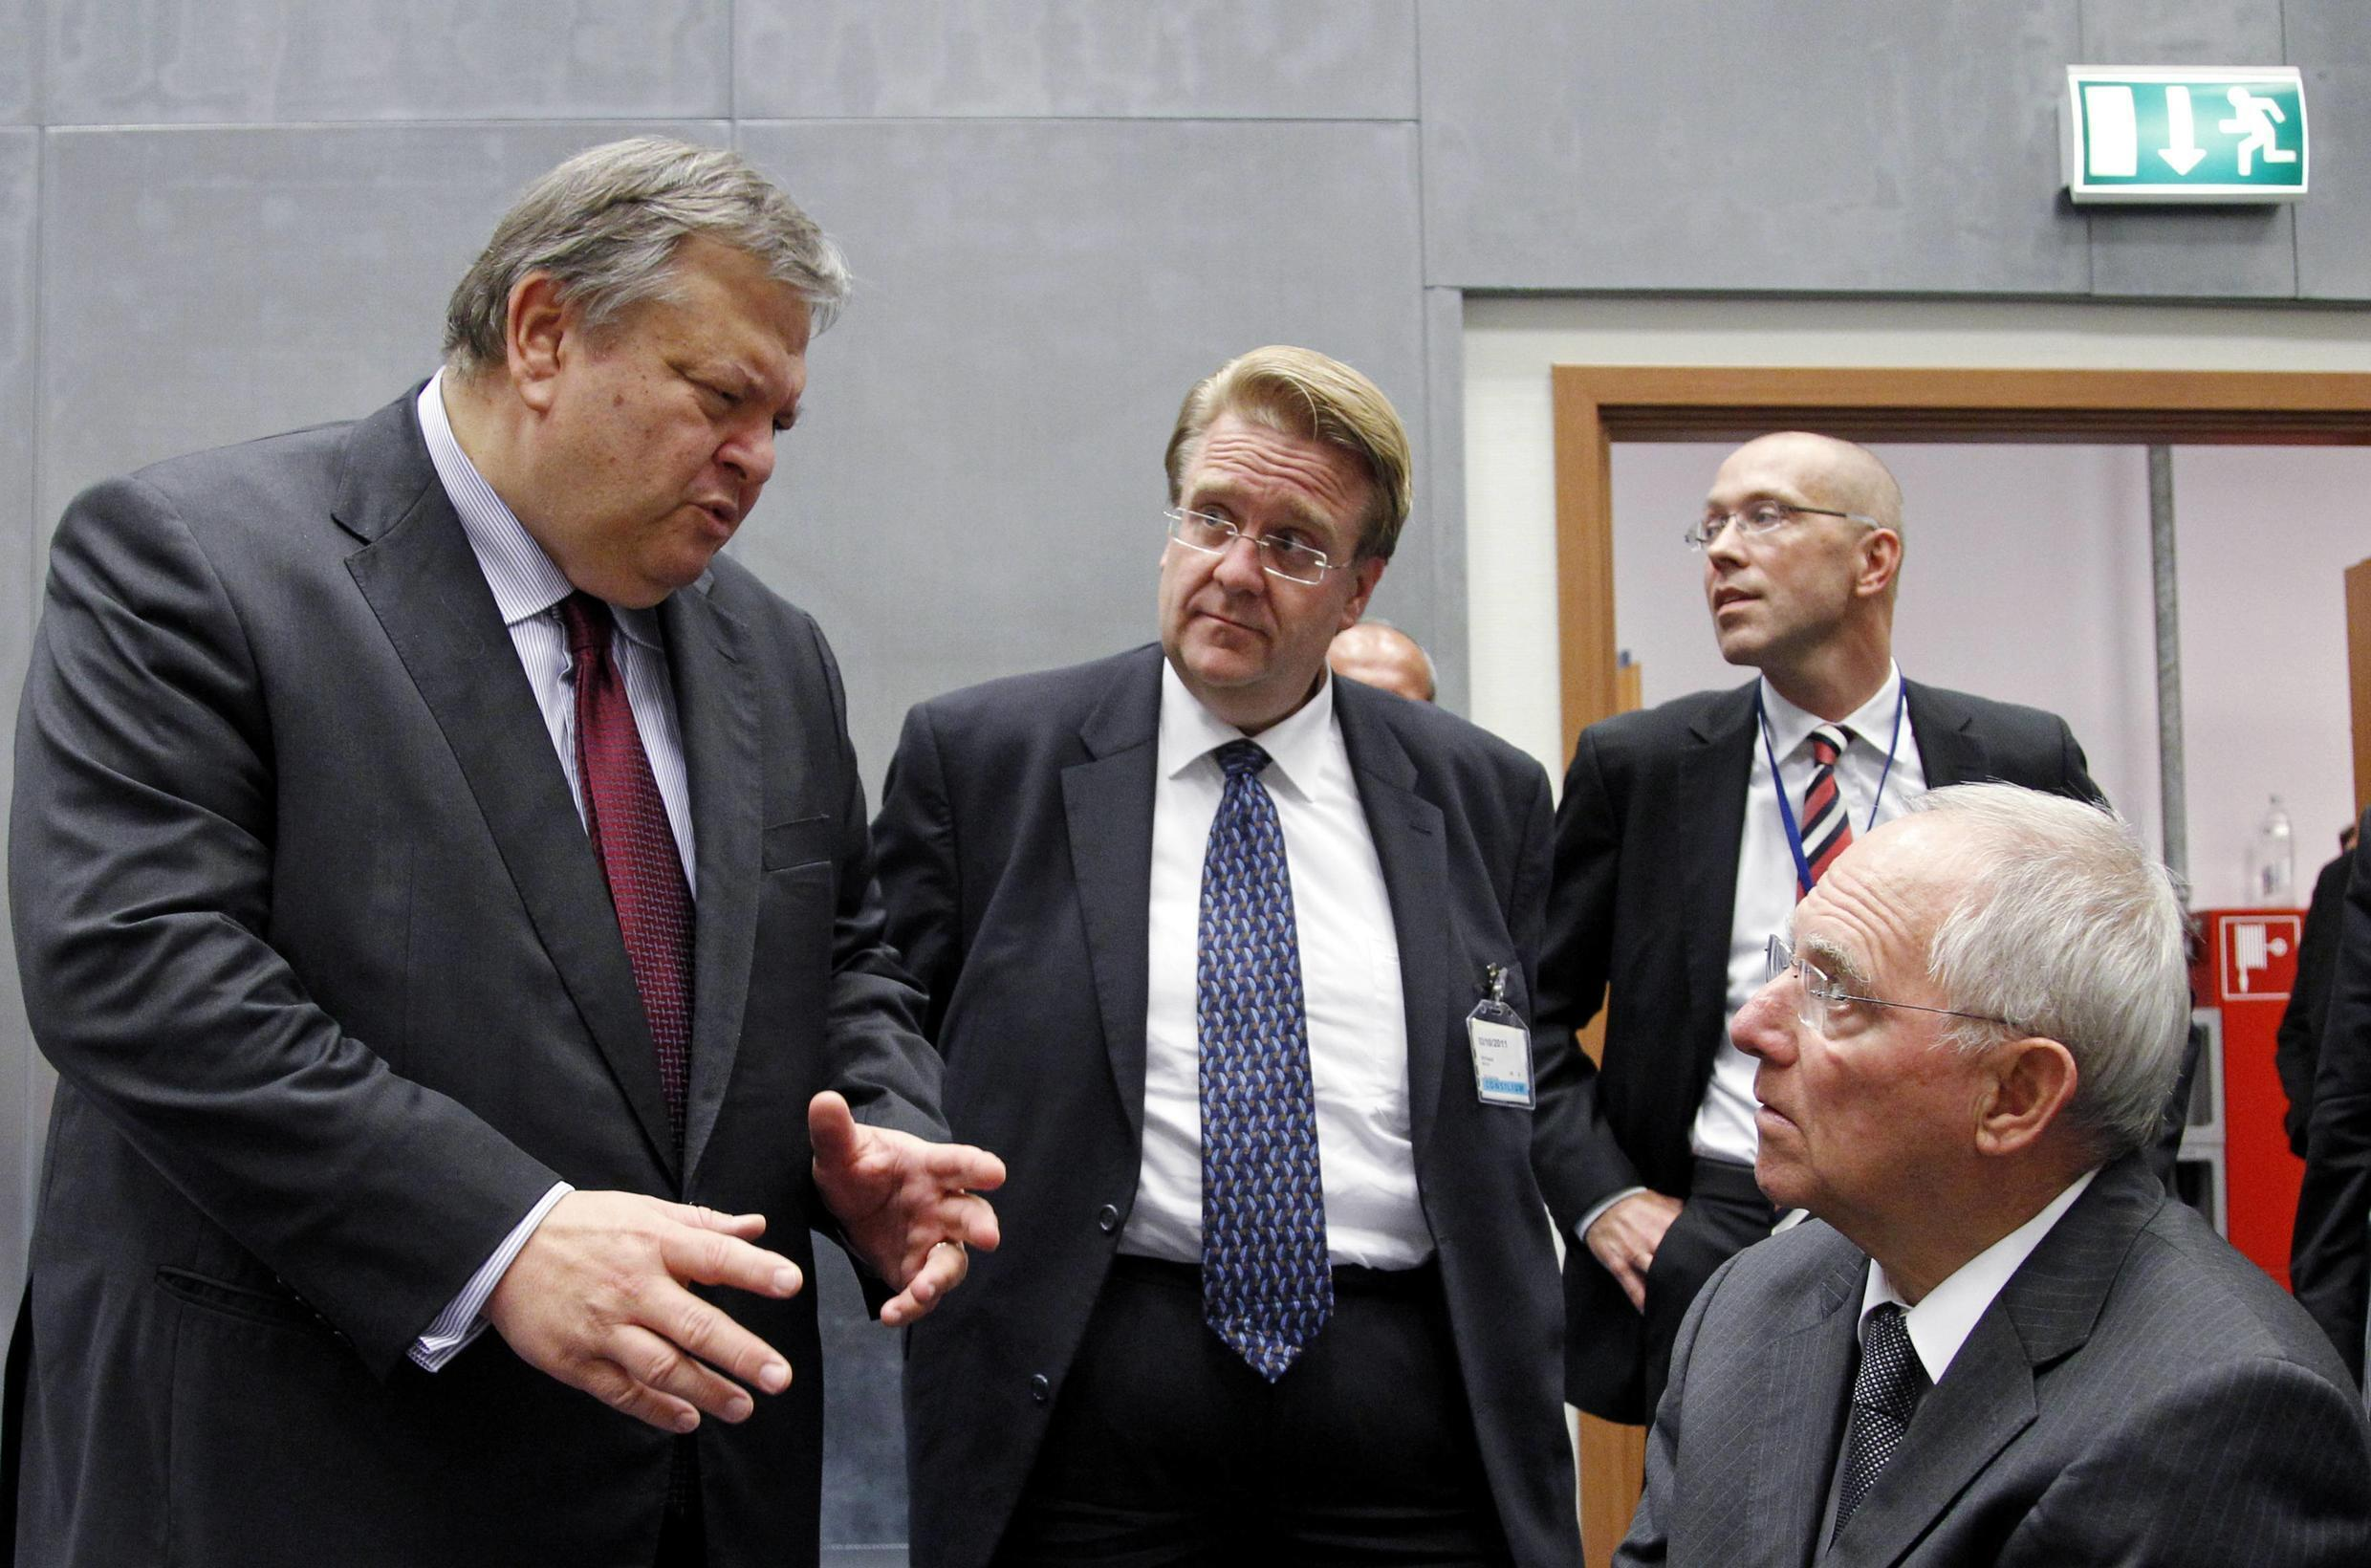 Greece's Finance Minister Evangelos Venizelos and his German counterpart Wolfgang Schaeuble